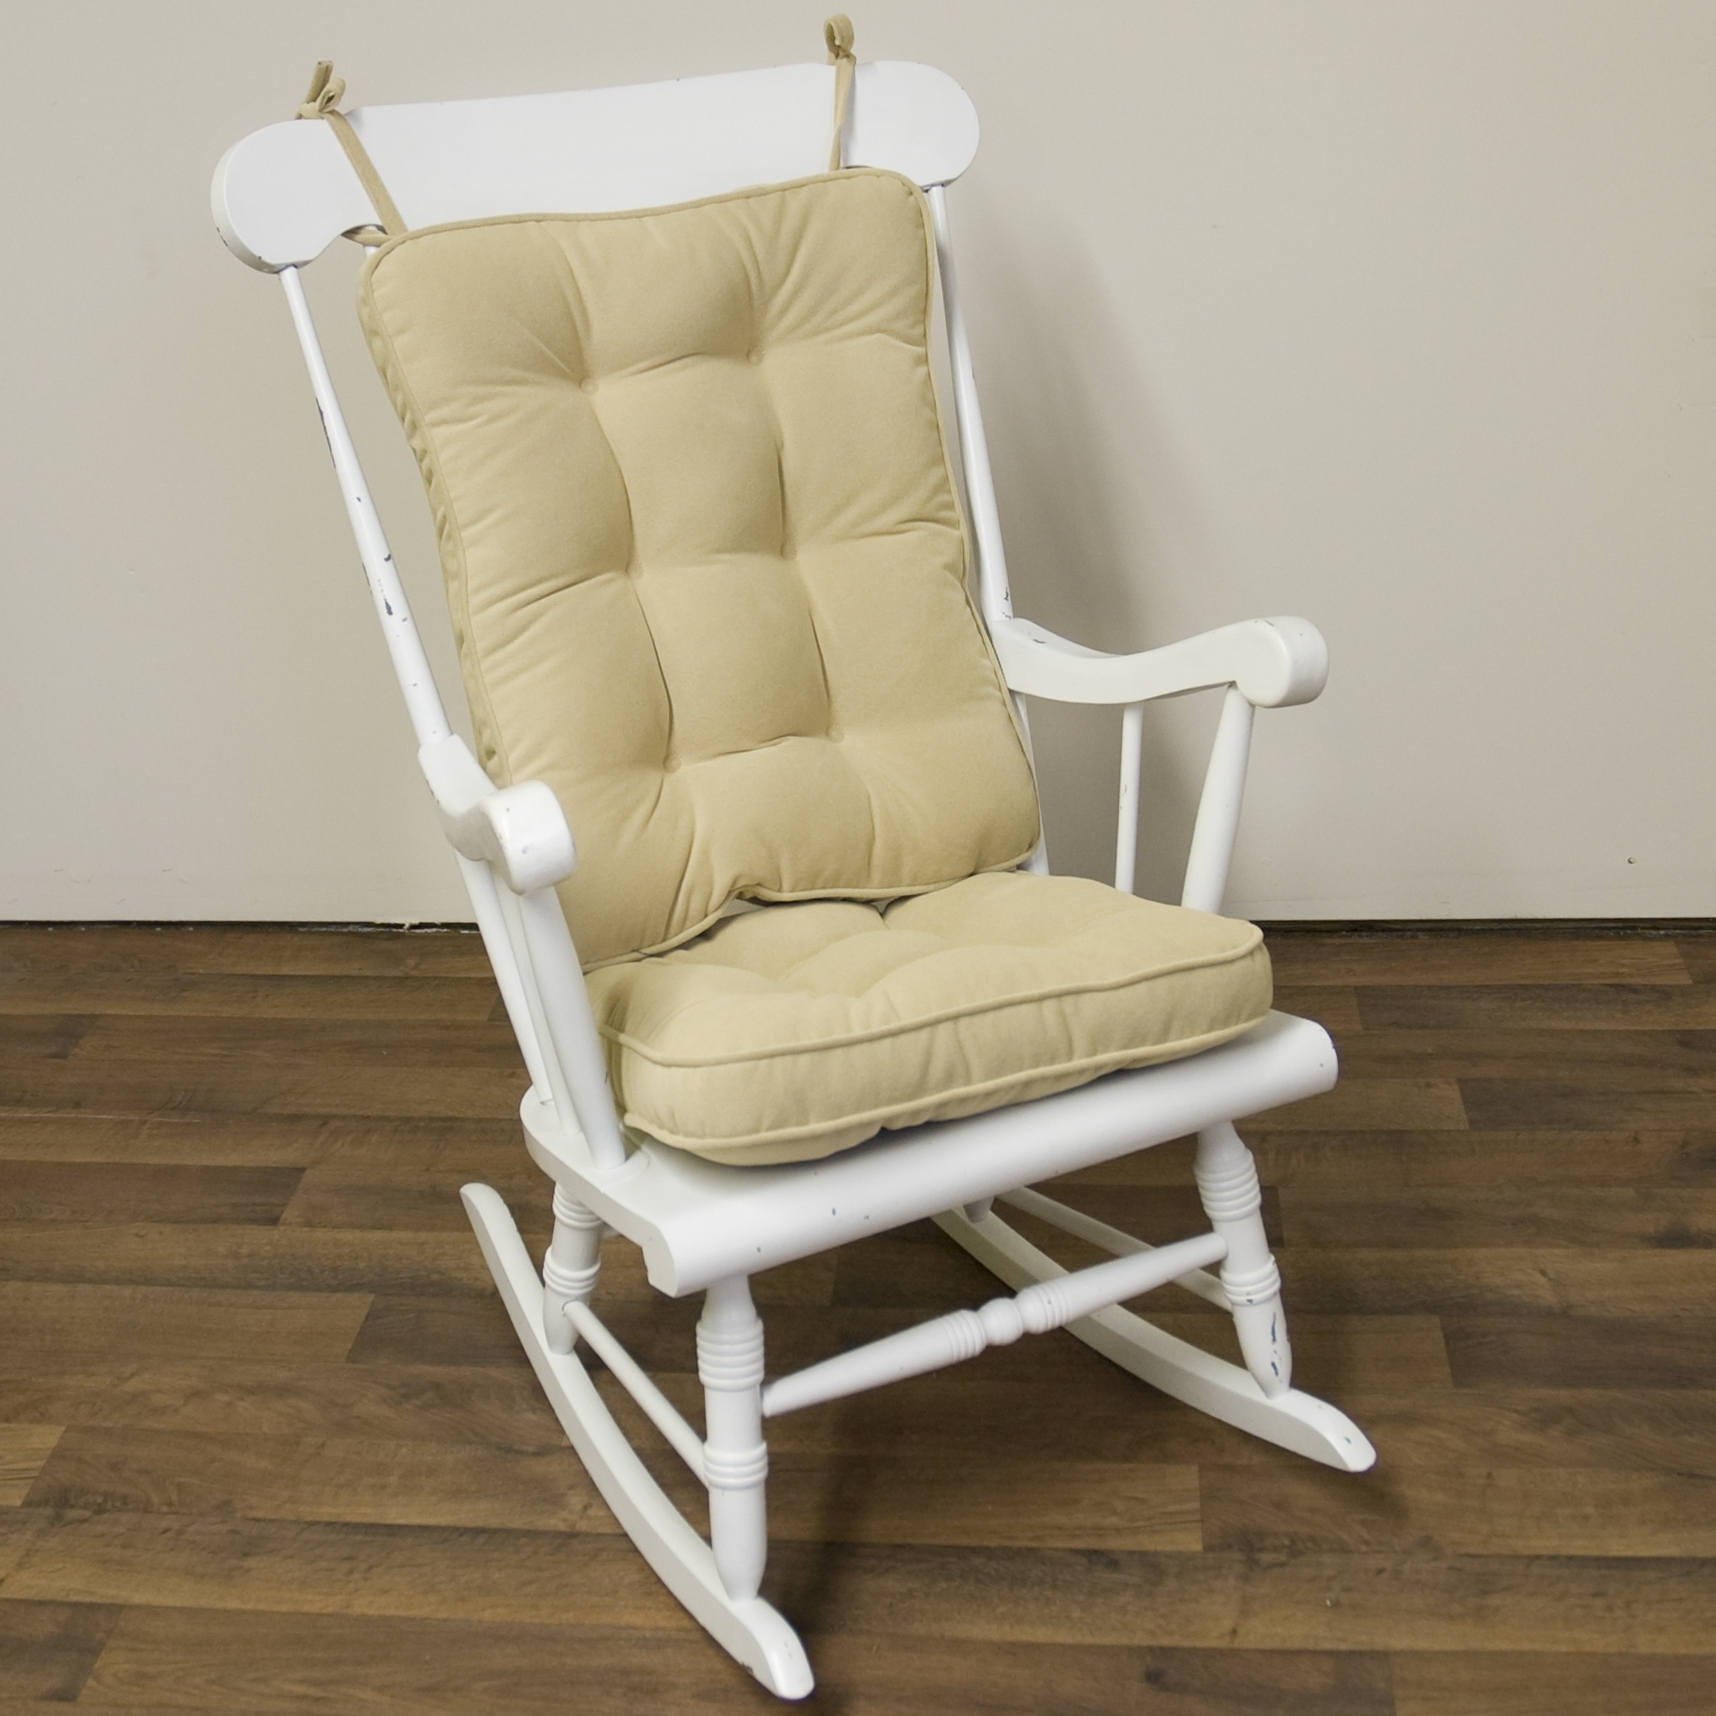 Preferred Best Lowes Wooden Rocking Chairs #27779 With Rocking Chairs At Lowes (View 7 of 20)